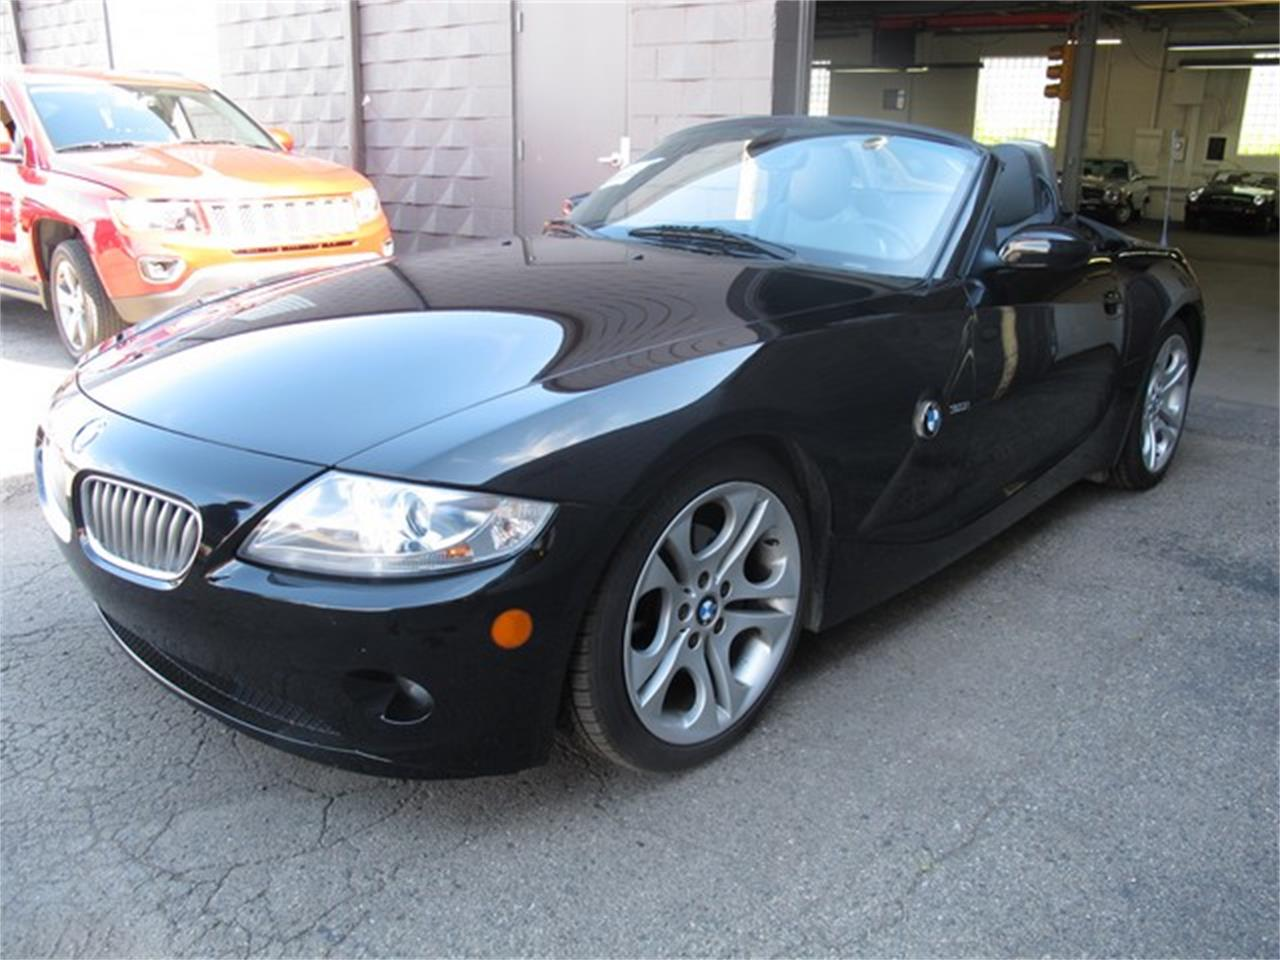 Large Picture of 2005 Z4 - $9,950.00 Offered by Classic Auto Showplace - NUY8